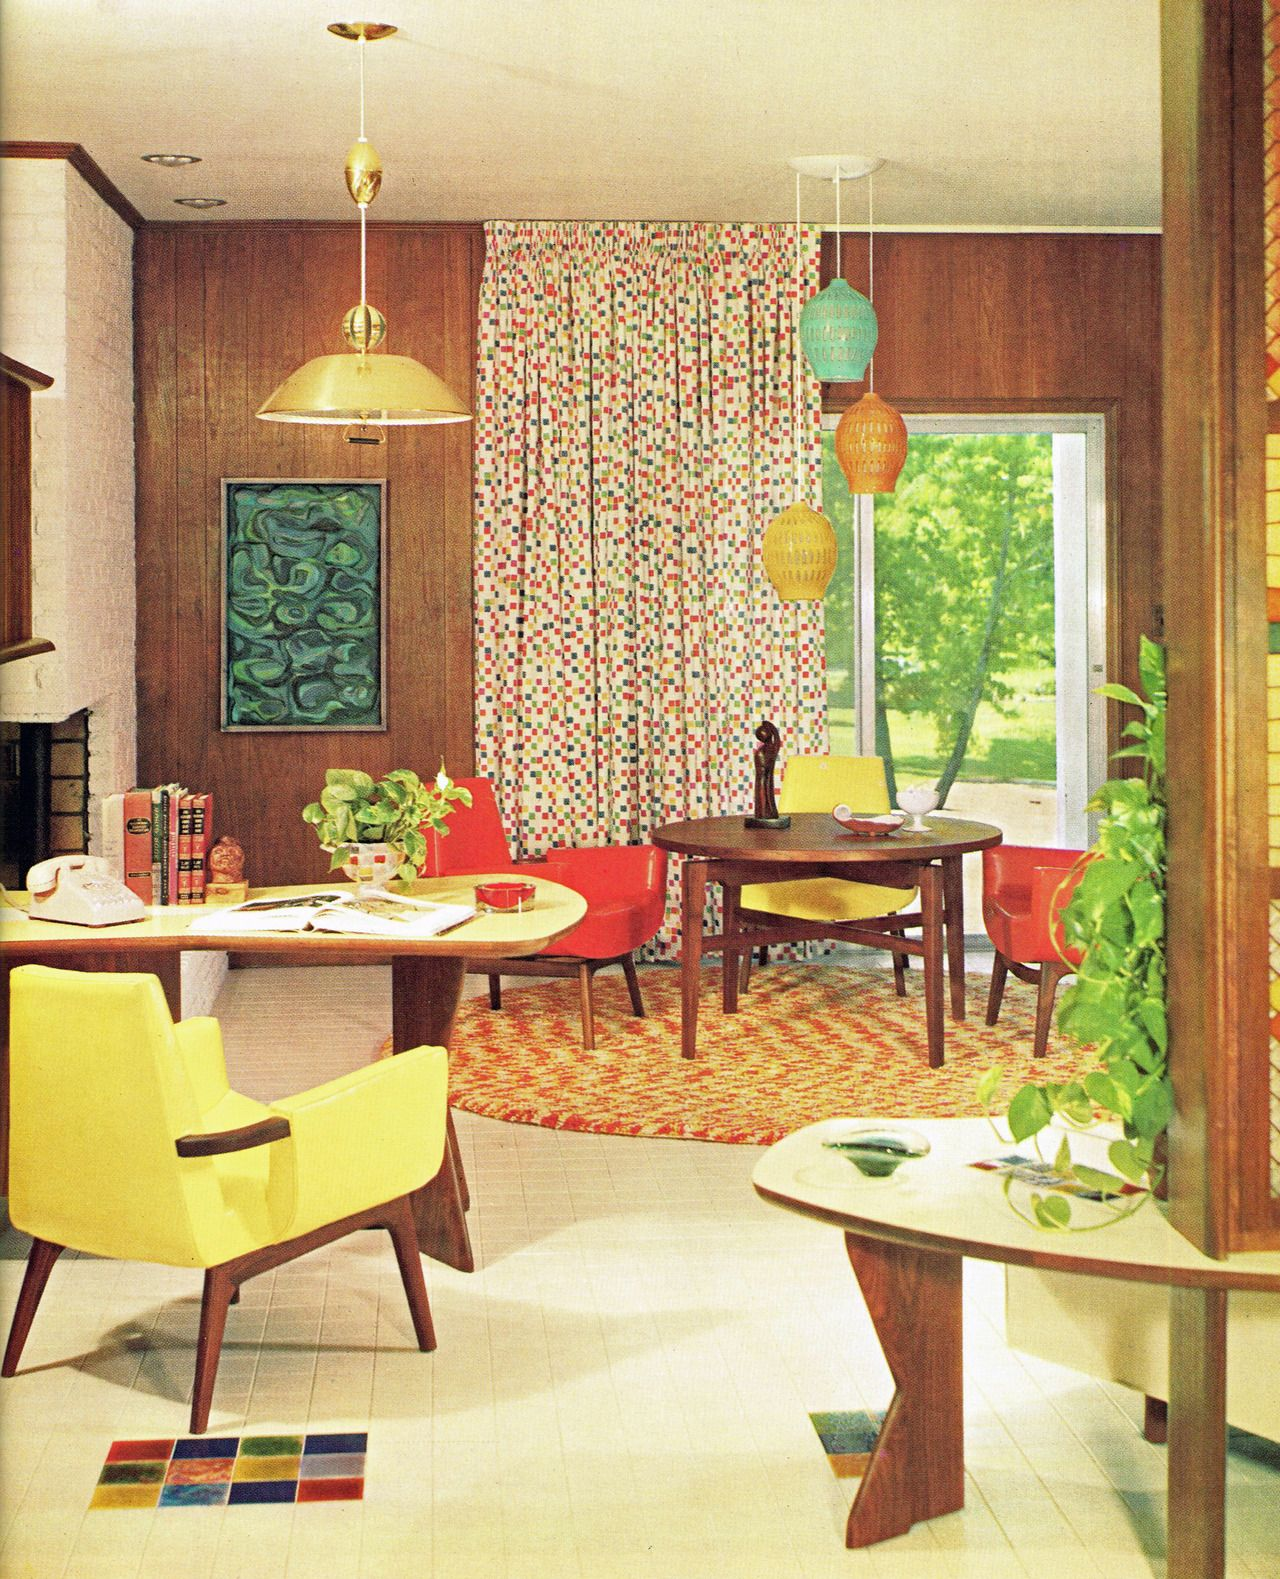 Retro decorating ideas living room - Pool 1960 S Background Astounding 1960 S Retro Living Room Furniture Design Ideas